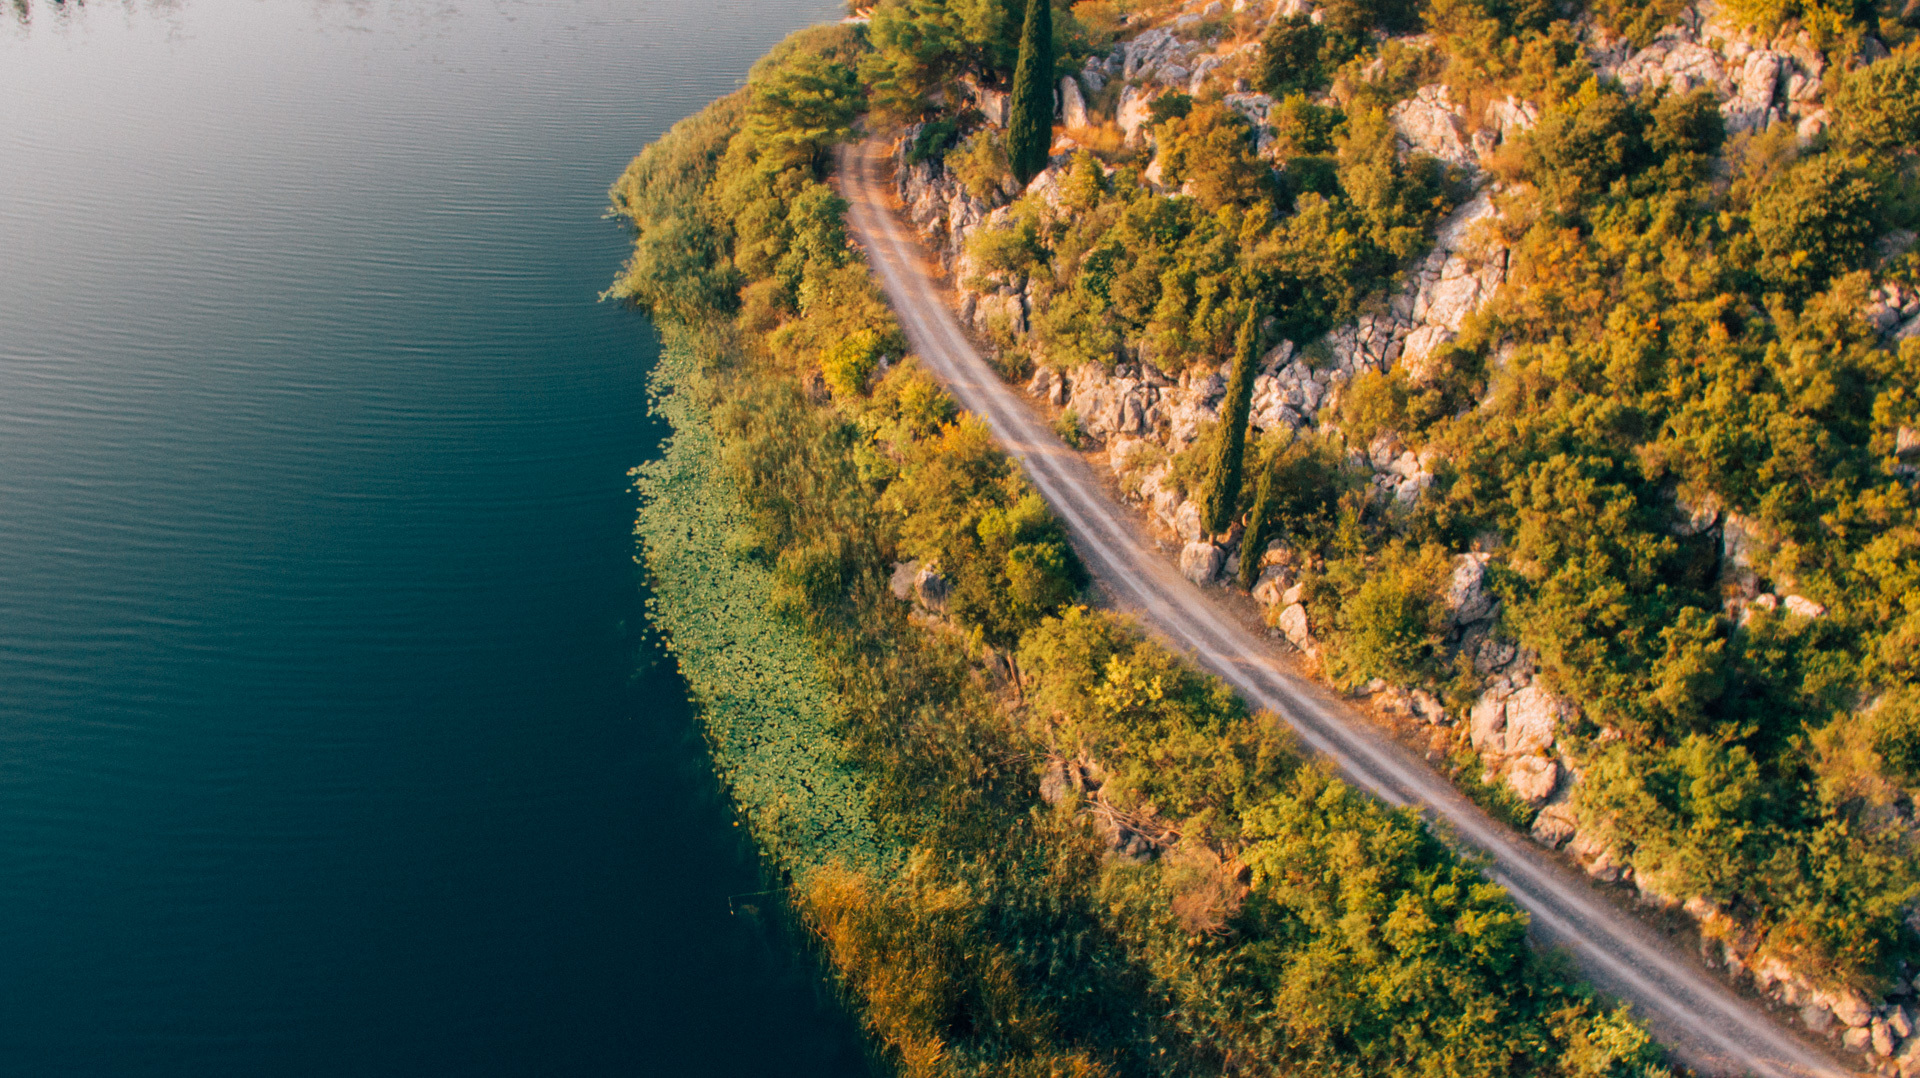 In pictures: 54 photos of Croatia's splendid lakes and rivers